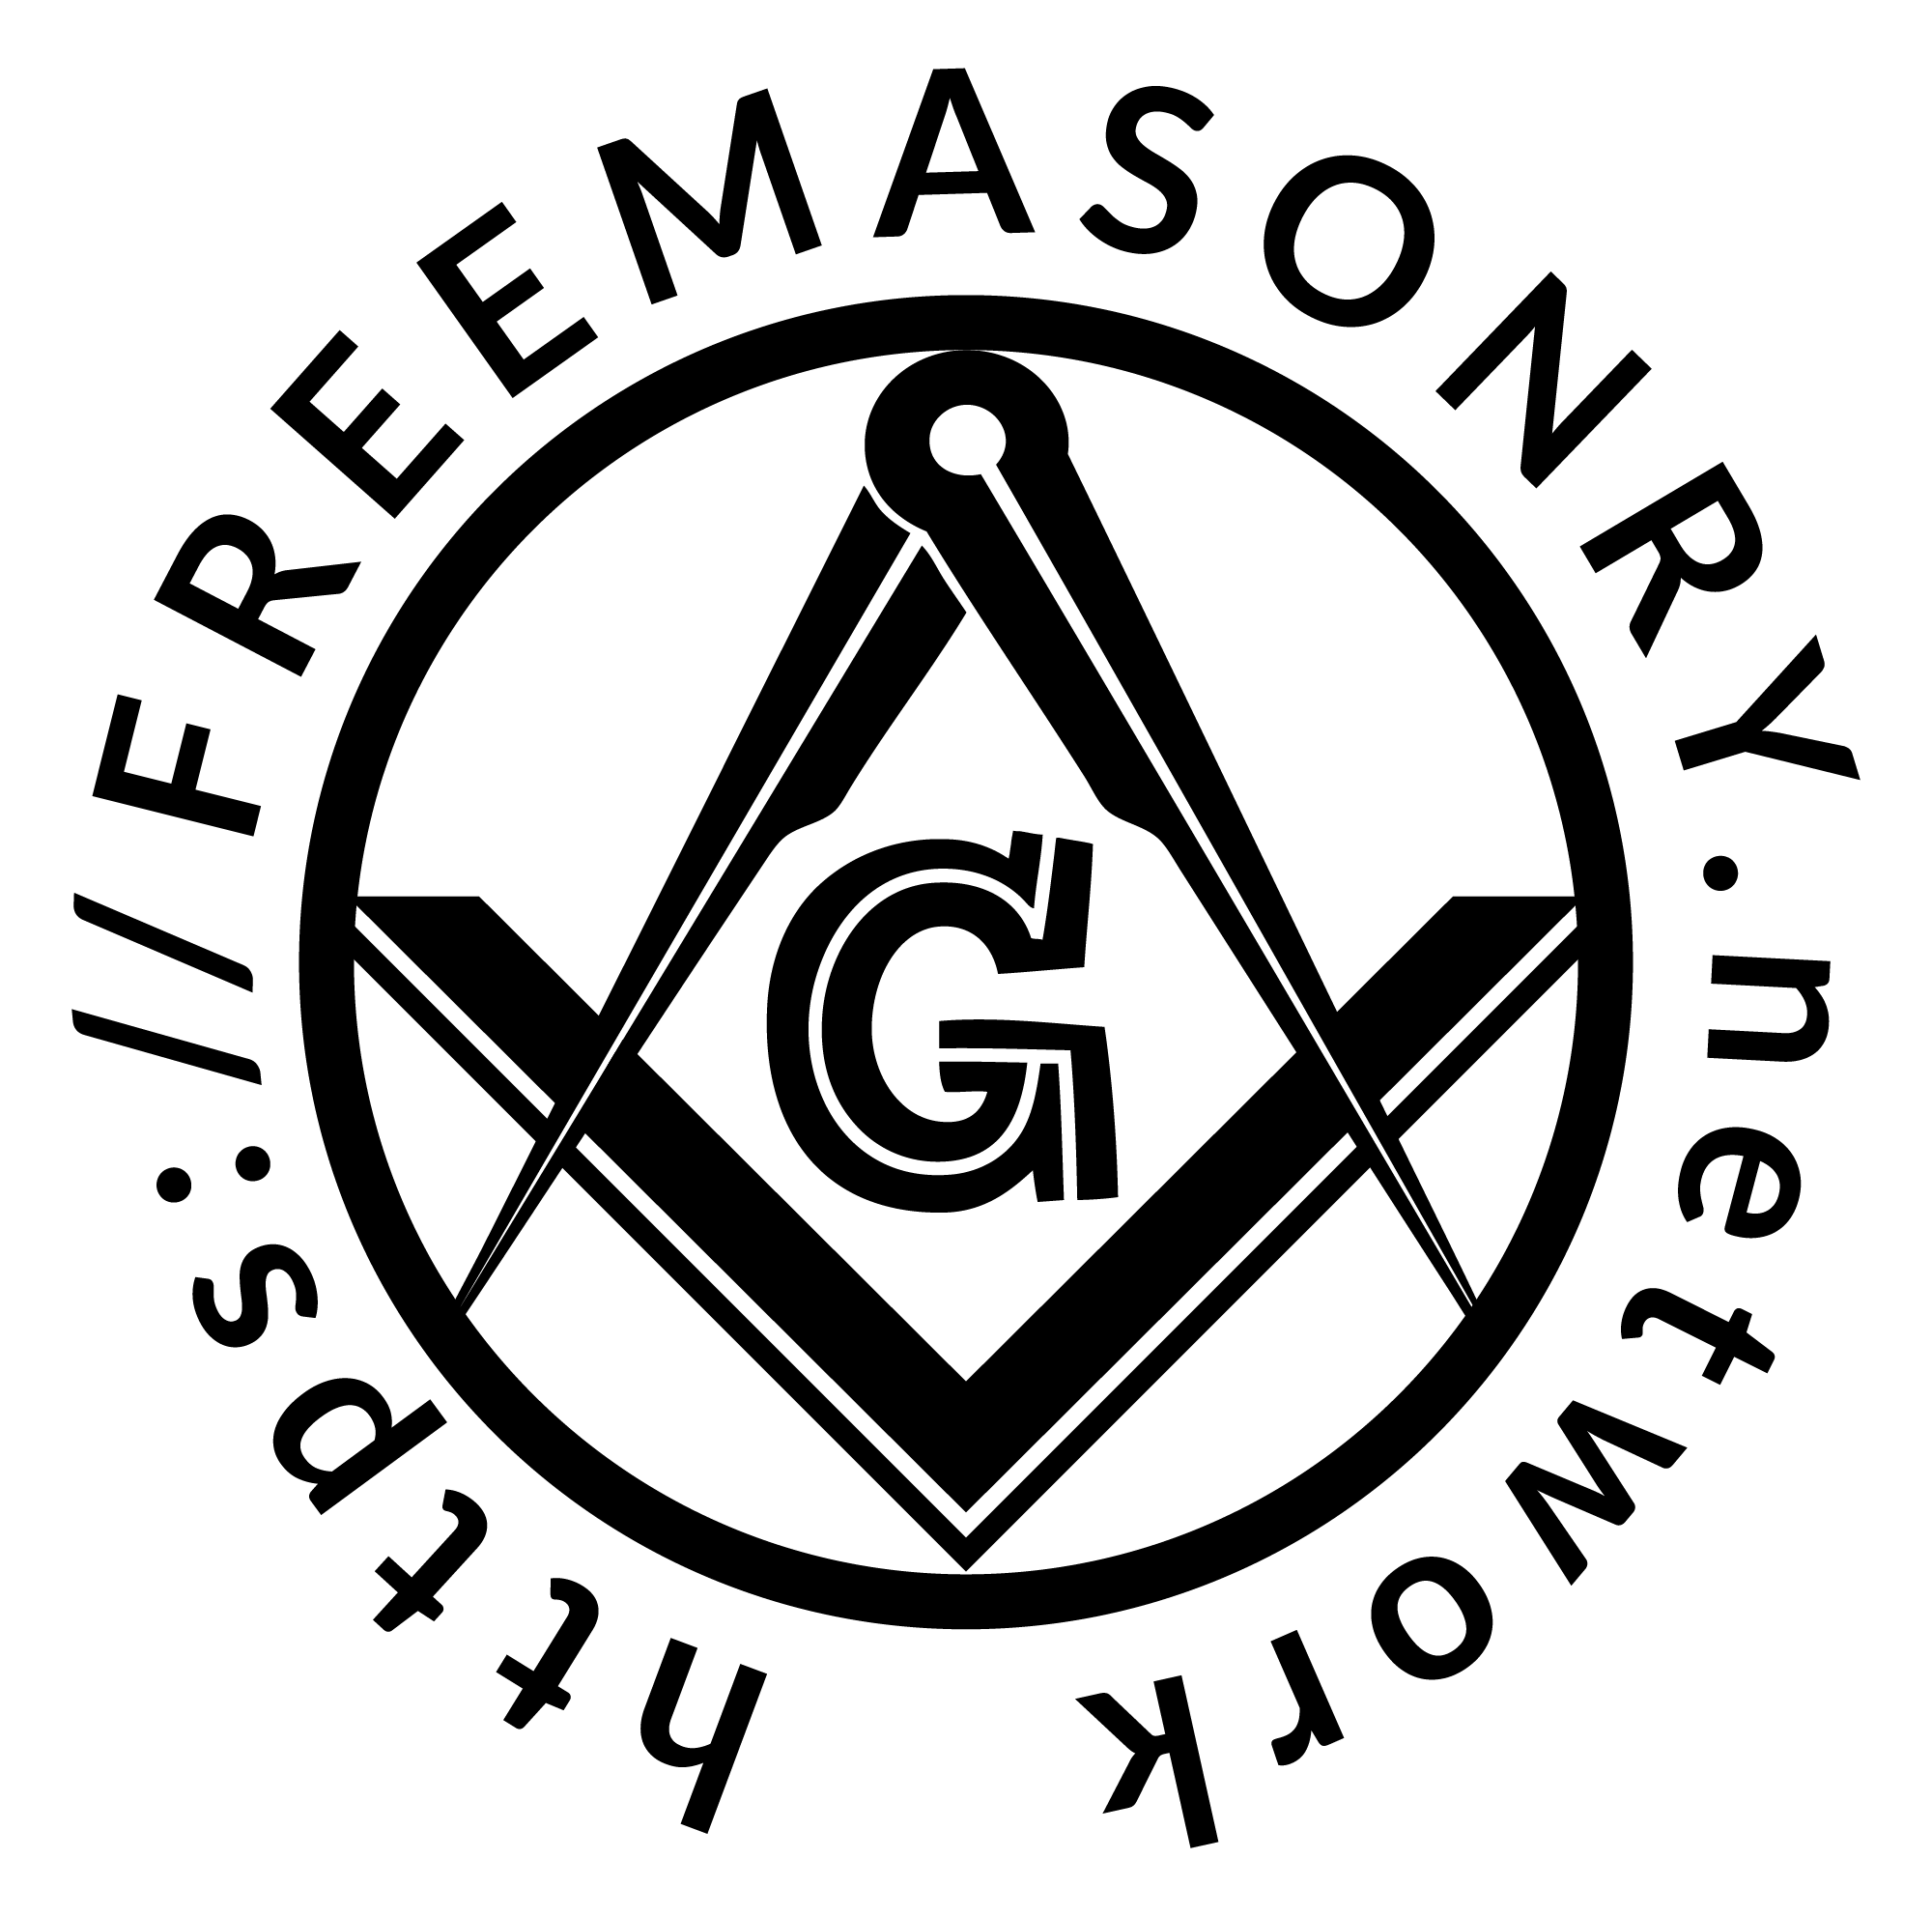 Liberal Obediences also have their Jurisdictions governing the degrees of the Ancient and Accepted Scottish Rite of progressive Freemasonry / Grand Orients.